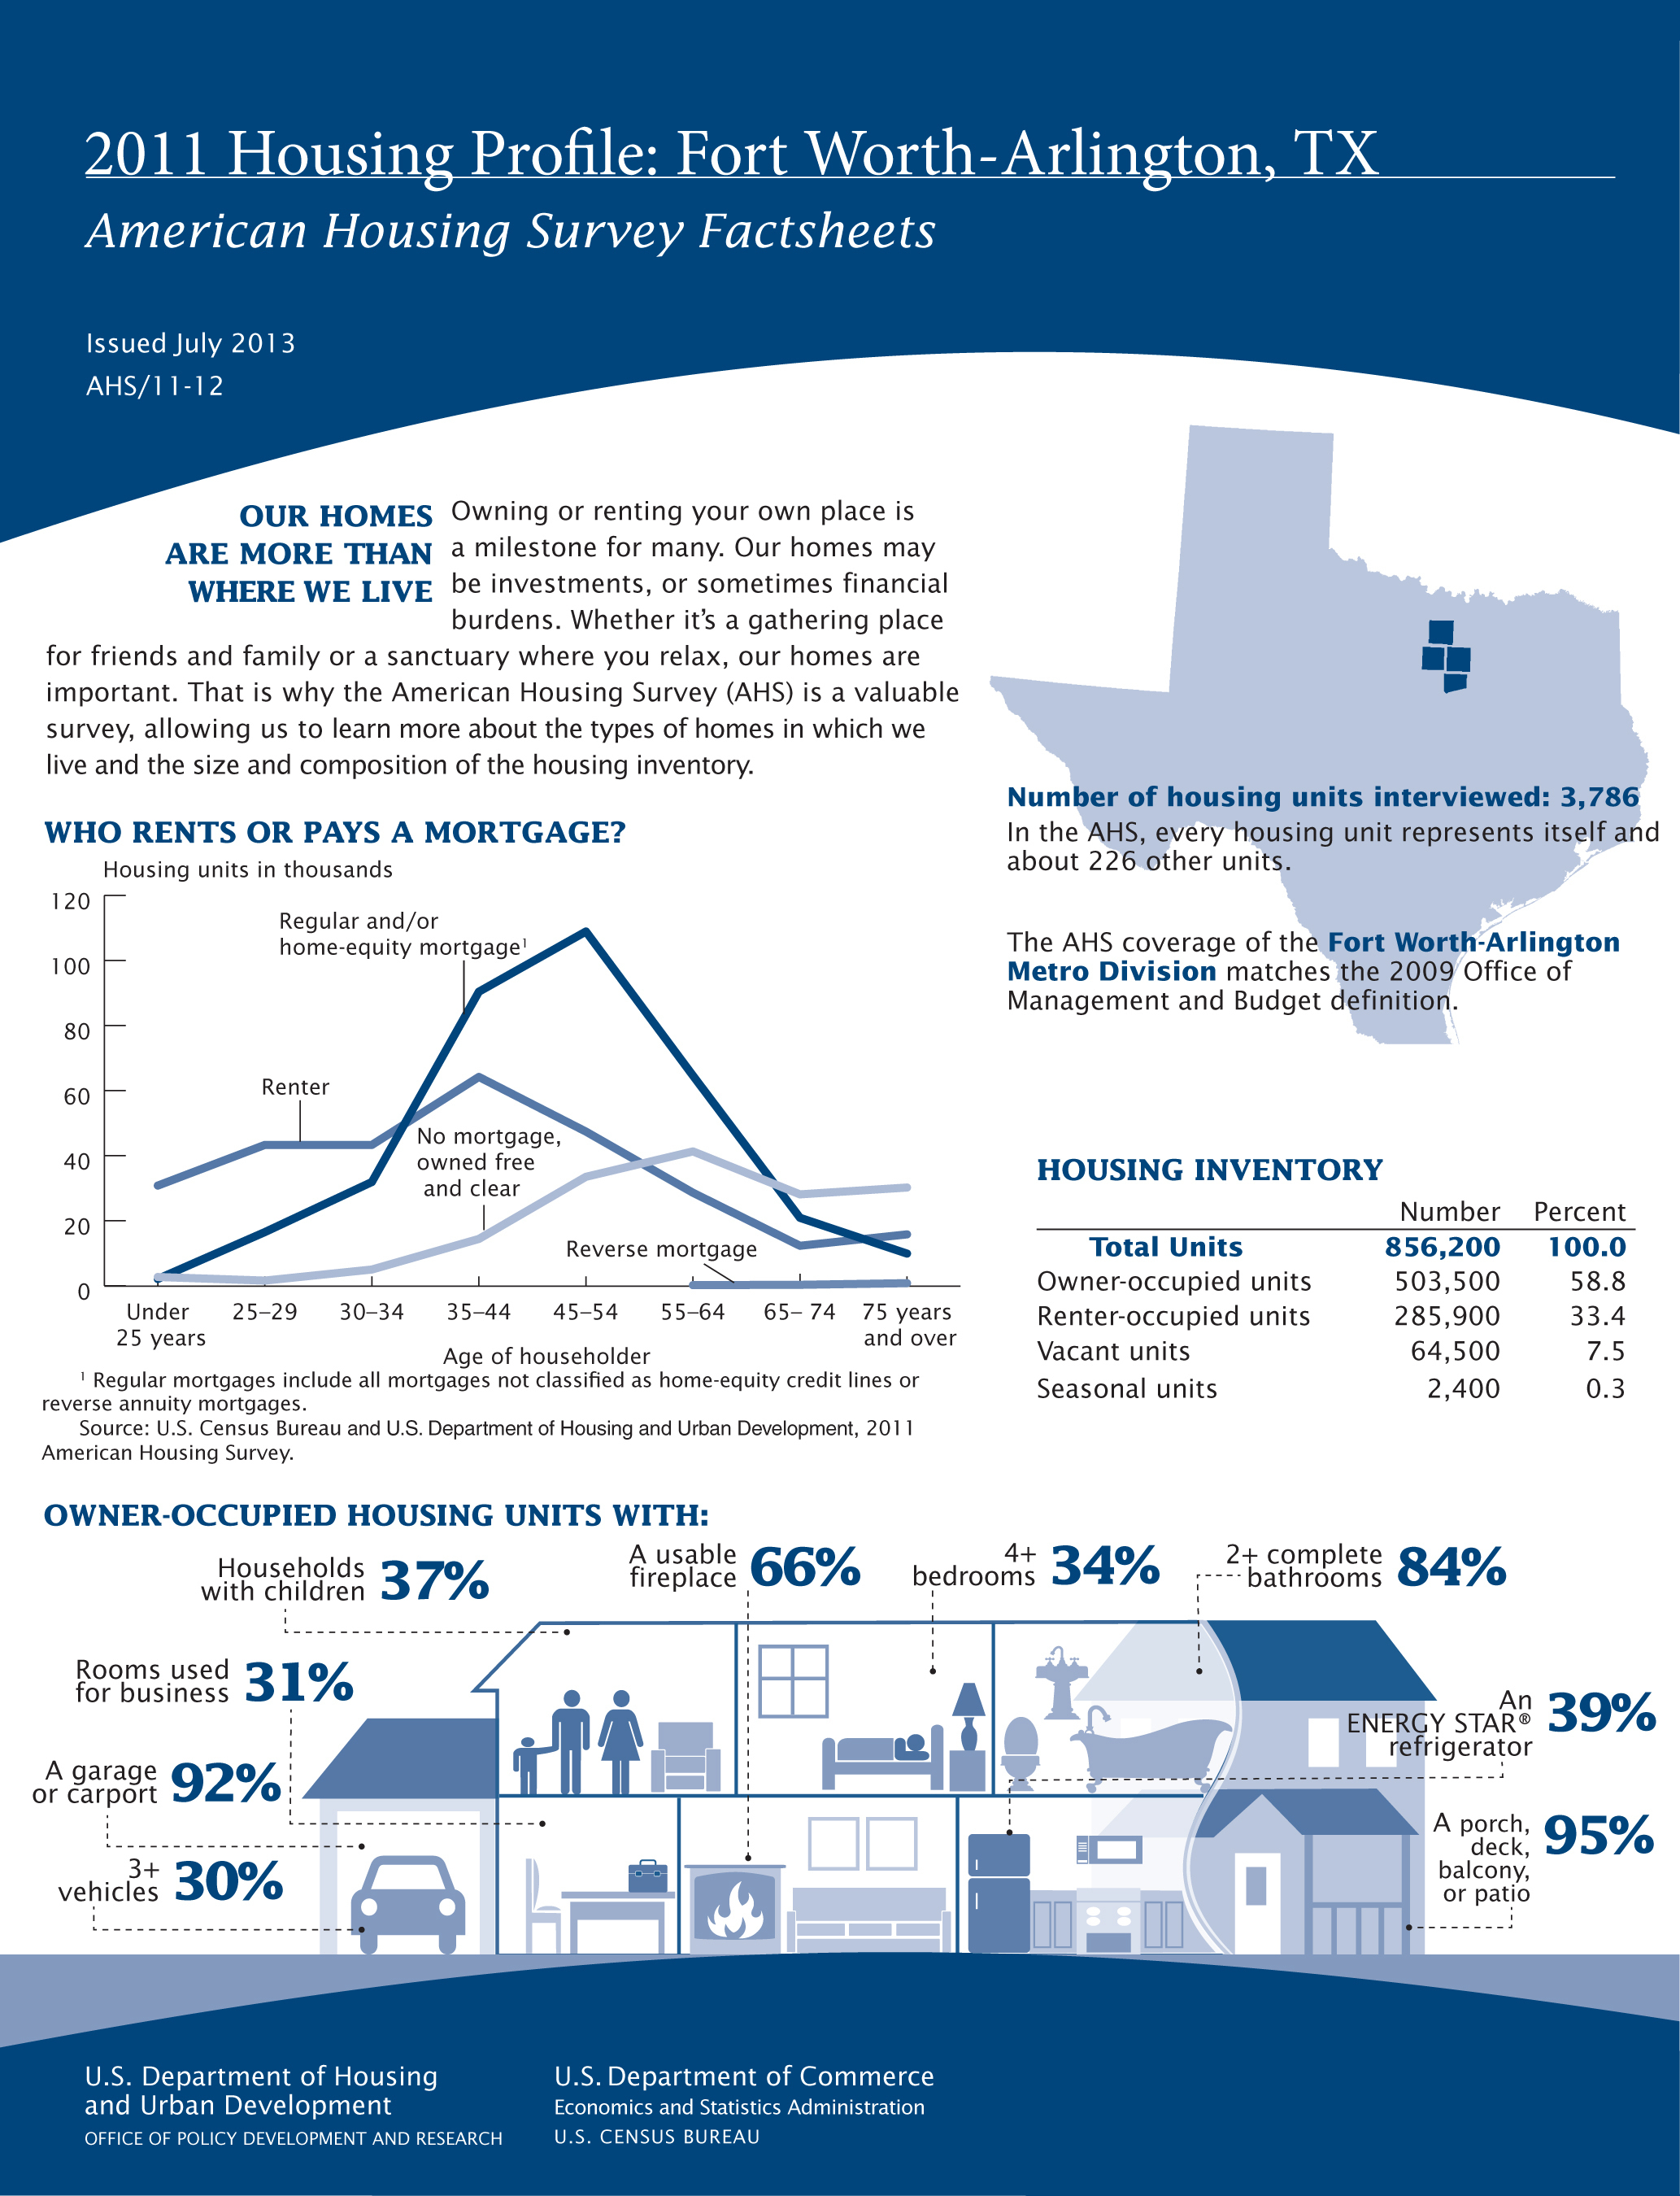 Homeowners in the Fort Worth-Arlington, Texas, metro division paid a median of $109,000 for their homes, according to a 2011 American Housing Survey profile released today. The median purchase price of homes constructed in the past four years was higher at $220,000. Statistics come from the American Housing Survey, which is sponsored by the Department of Housing and Urban Development (HUD) and conducted by the U.S. Census Bureau. www.census.gov.  (PRNewsFoto/U.S. Census Bureau)